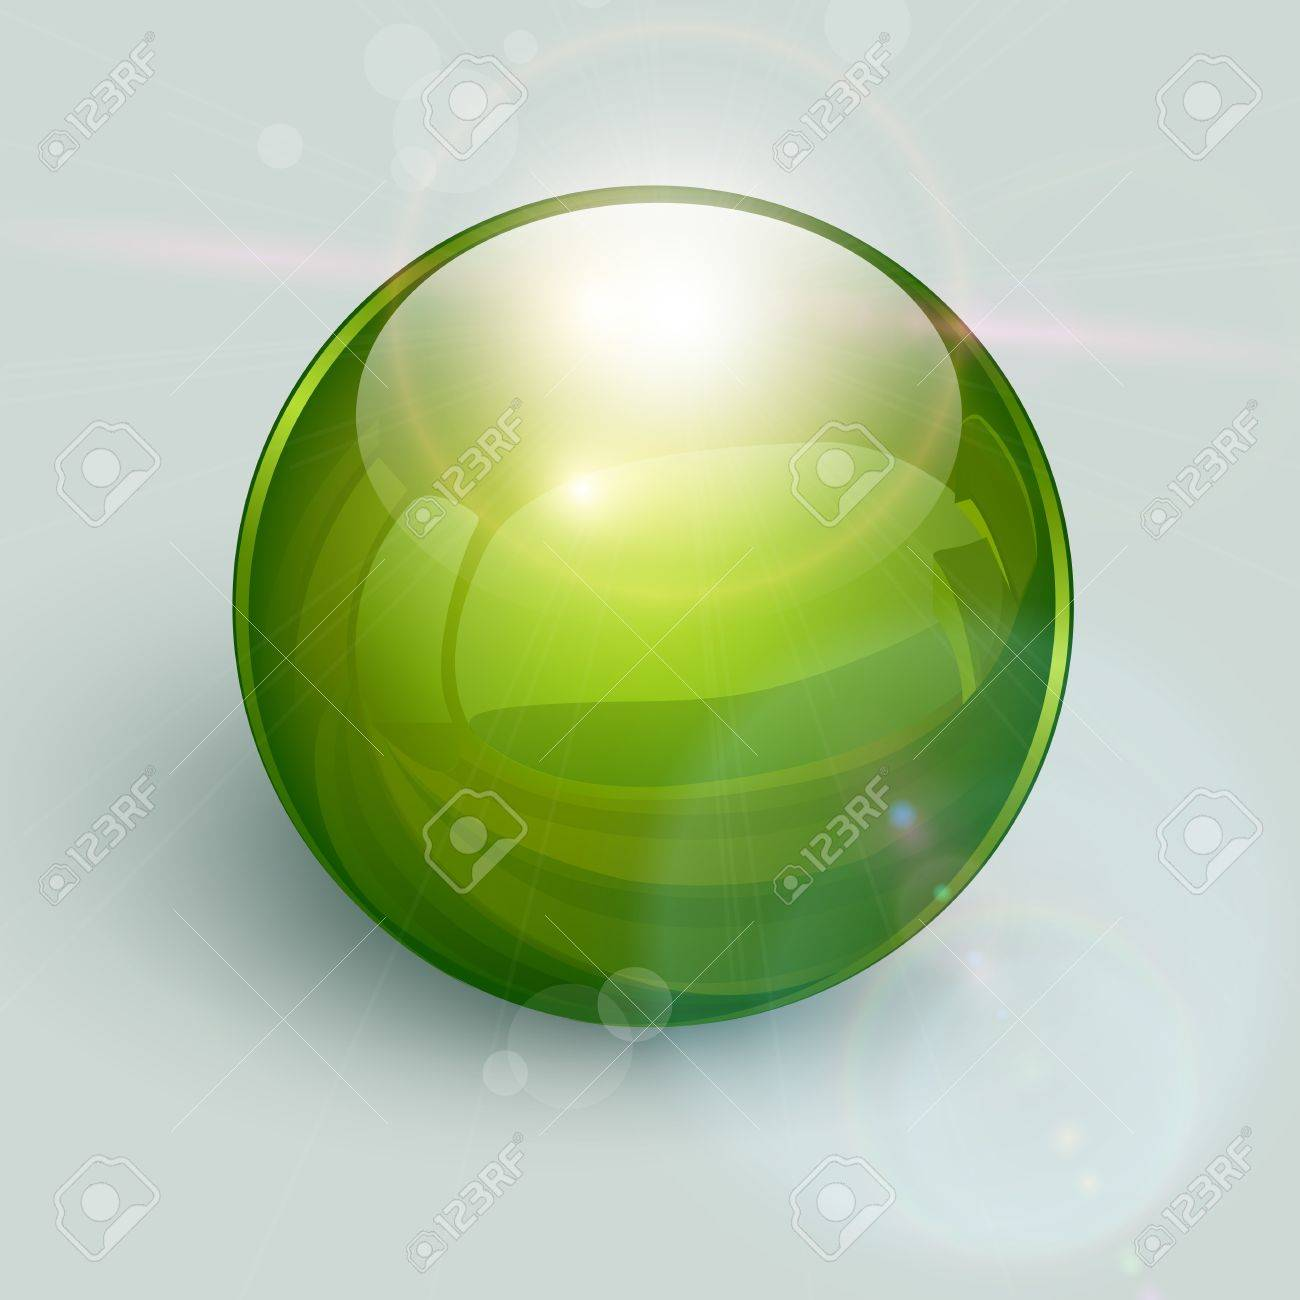 Green glass ball on background with lens flares Stock Vector - 14678743